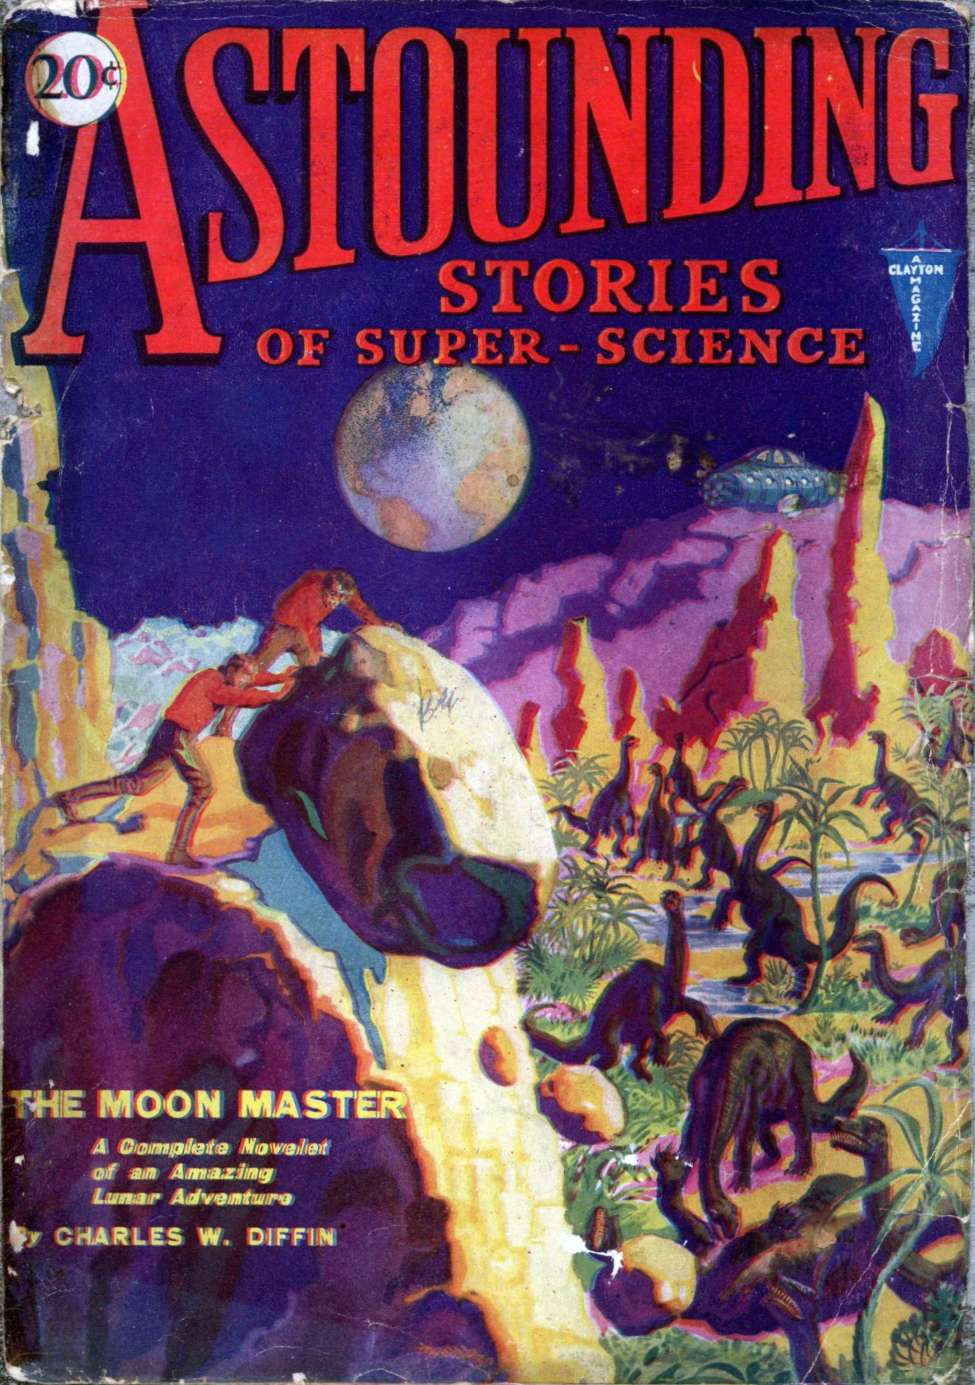 Comic Book Cover For Astounding v02 03 - The Moon Master - Charles W. Diffin